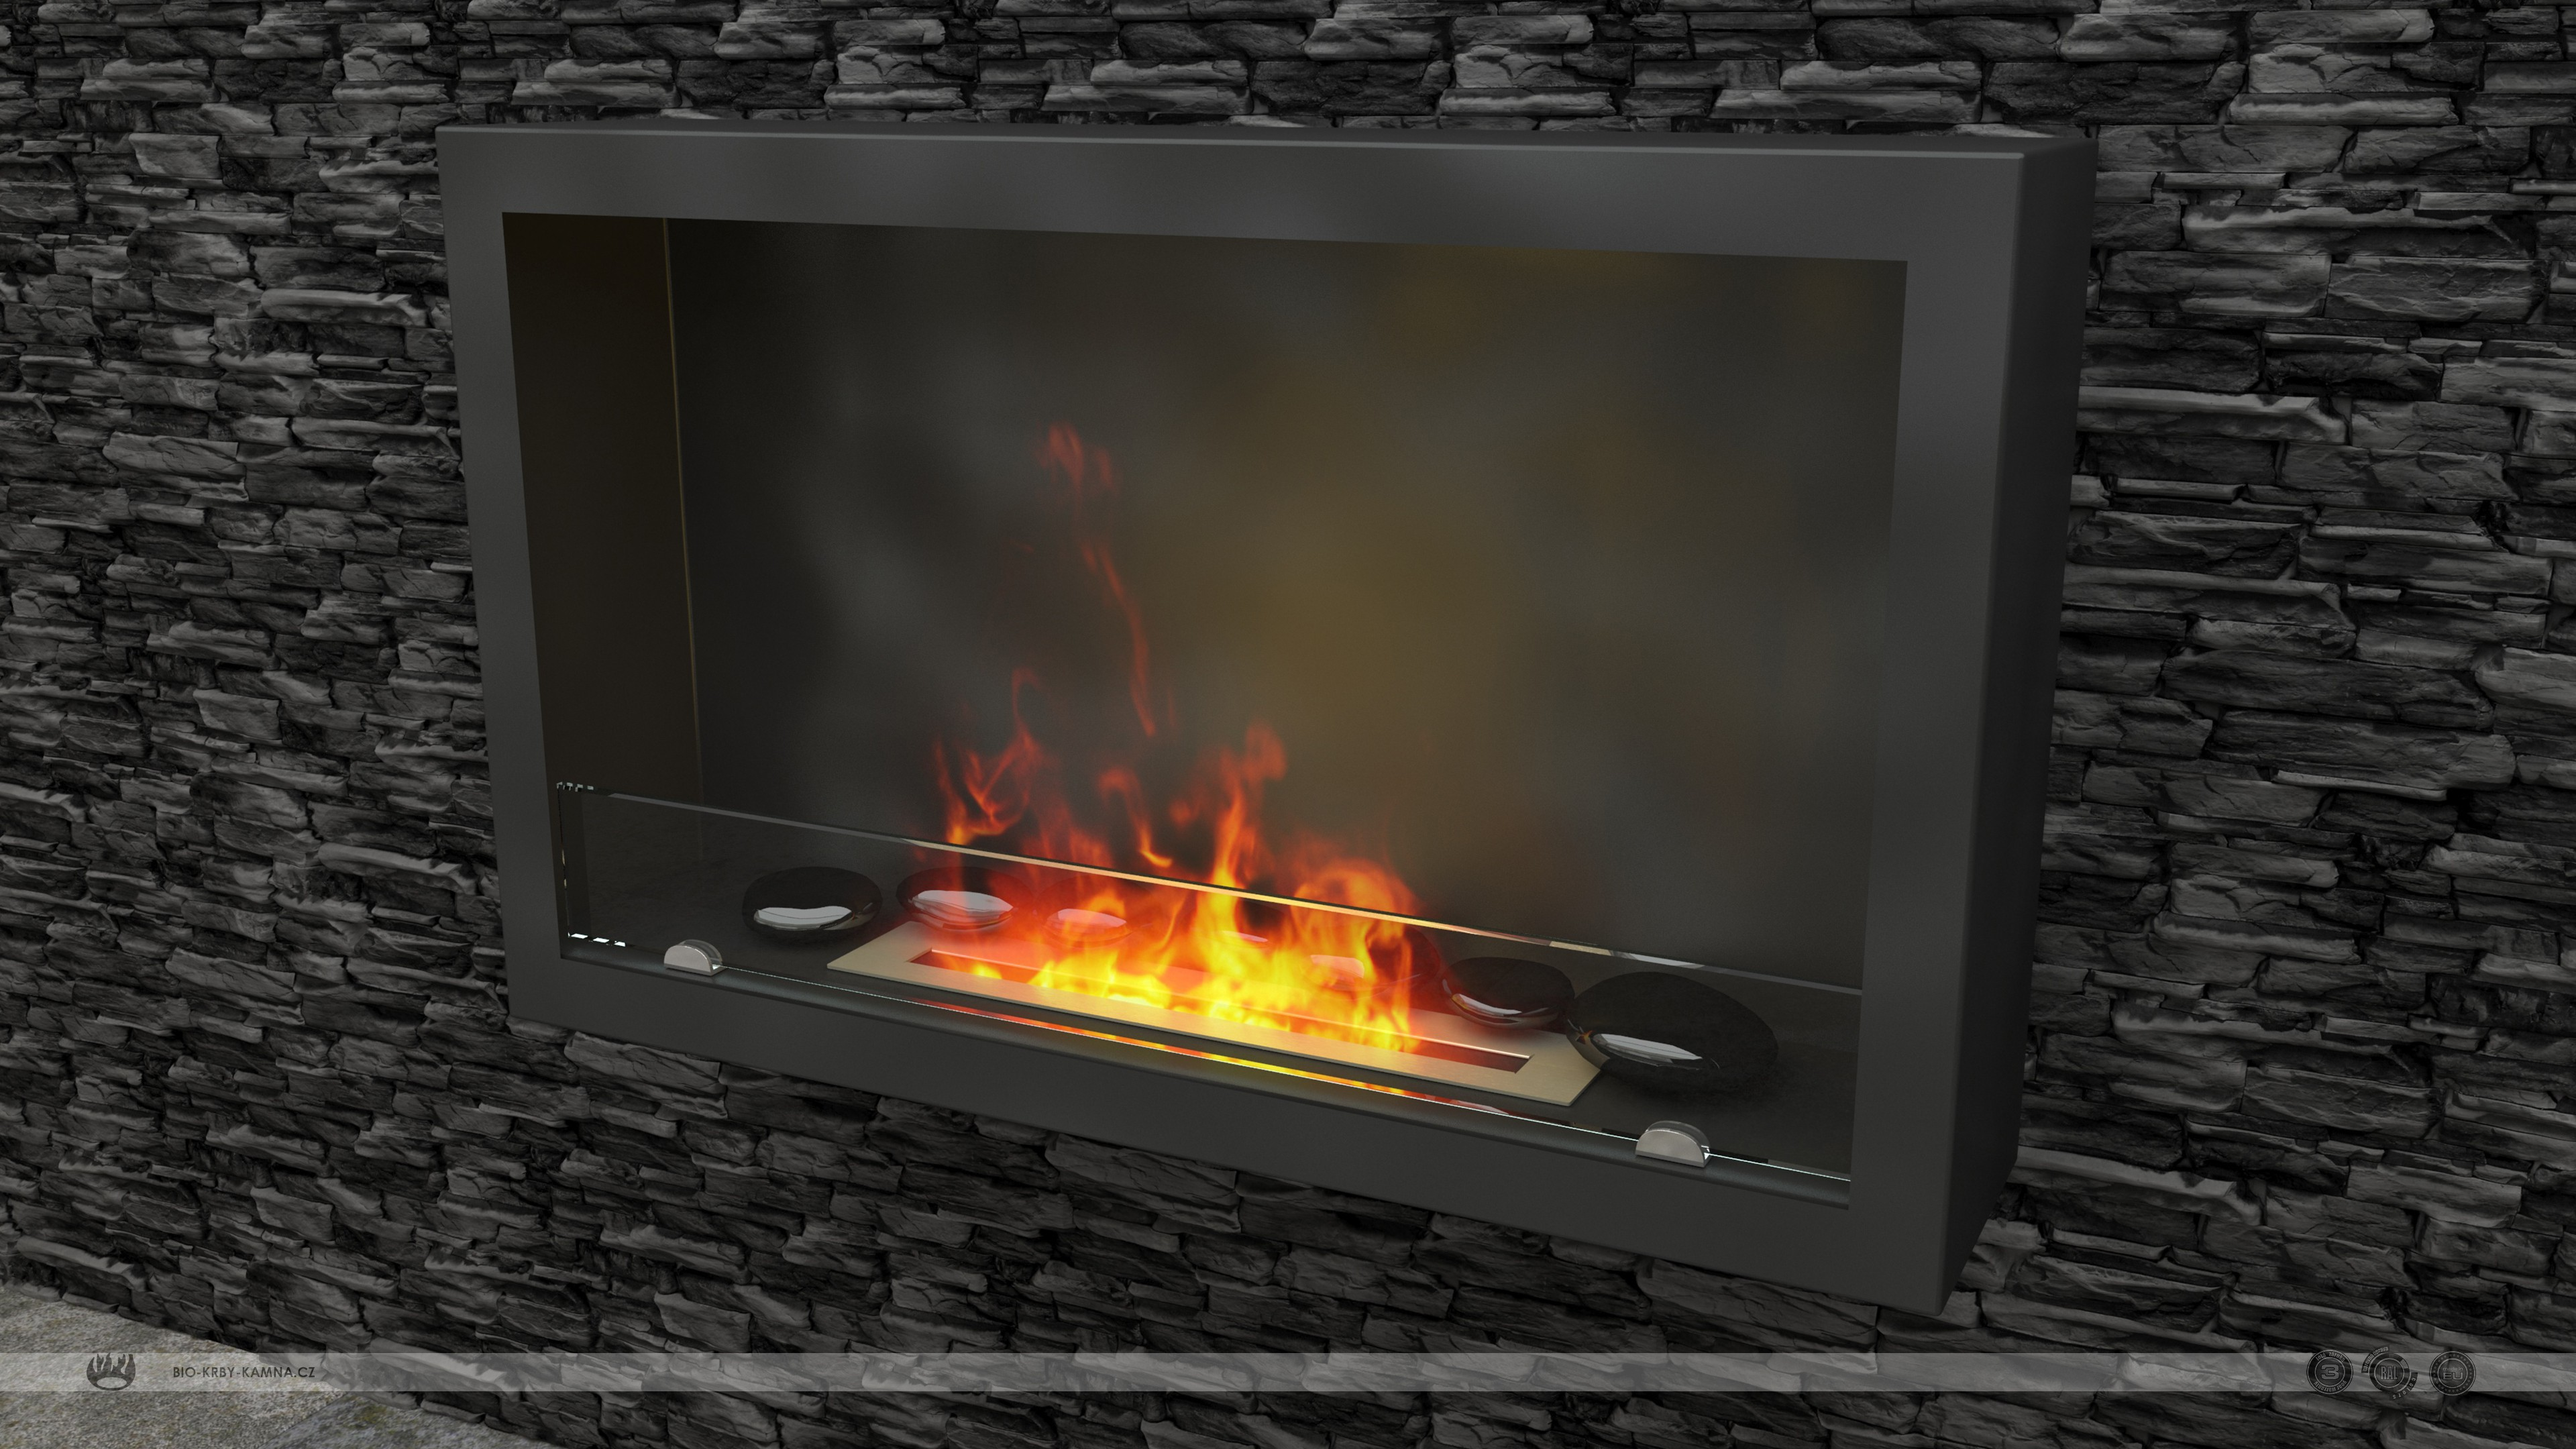 Fireplace without chimney AF-61 + Burner 480 + Black polished stones